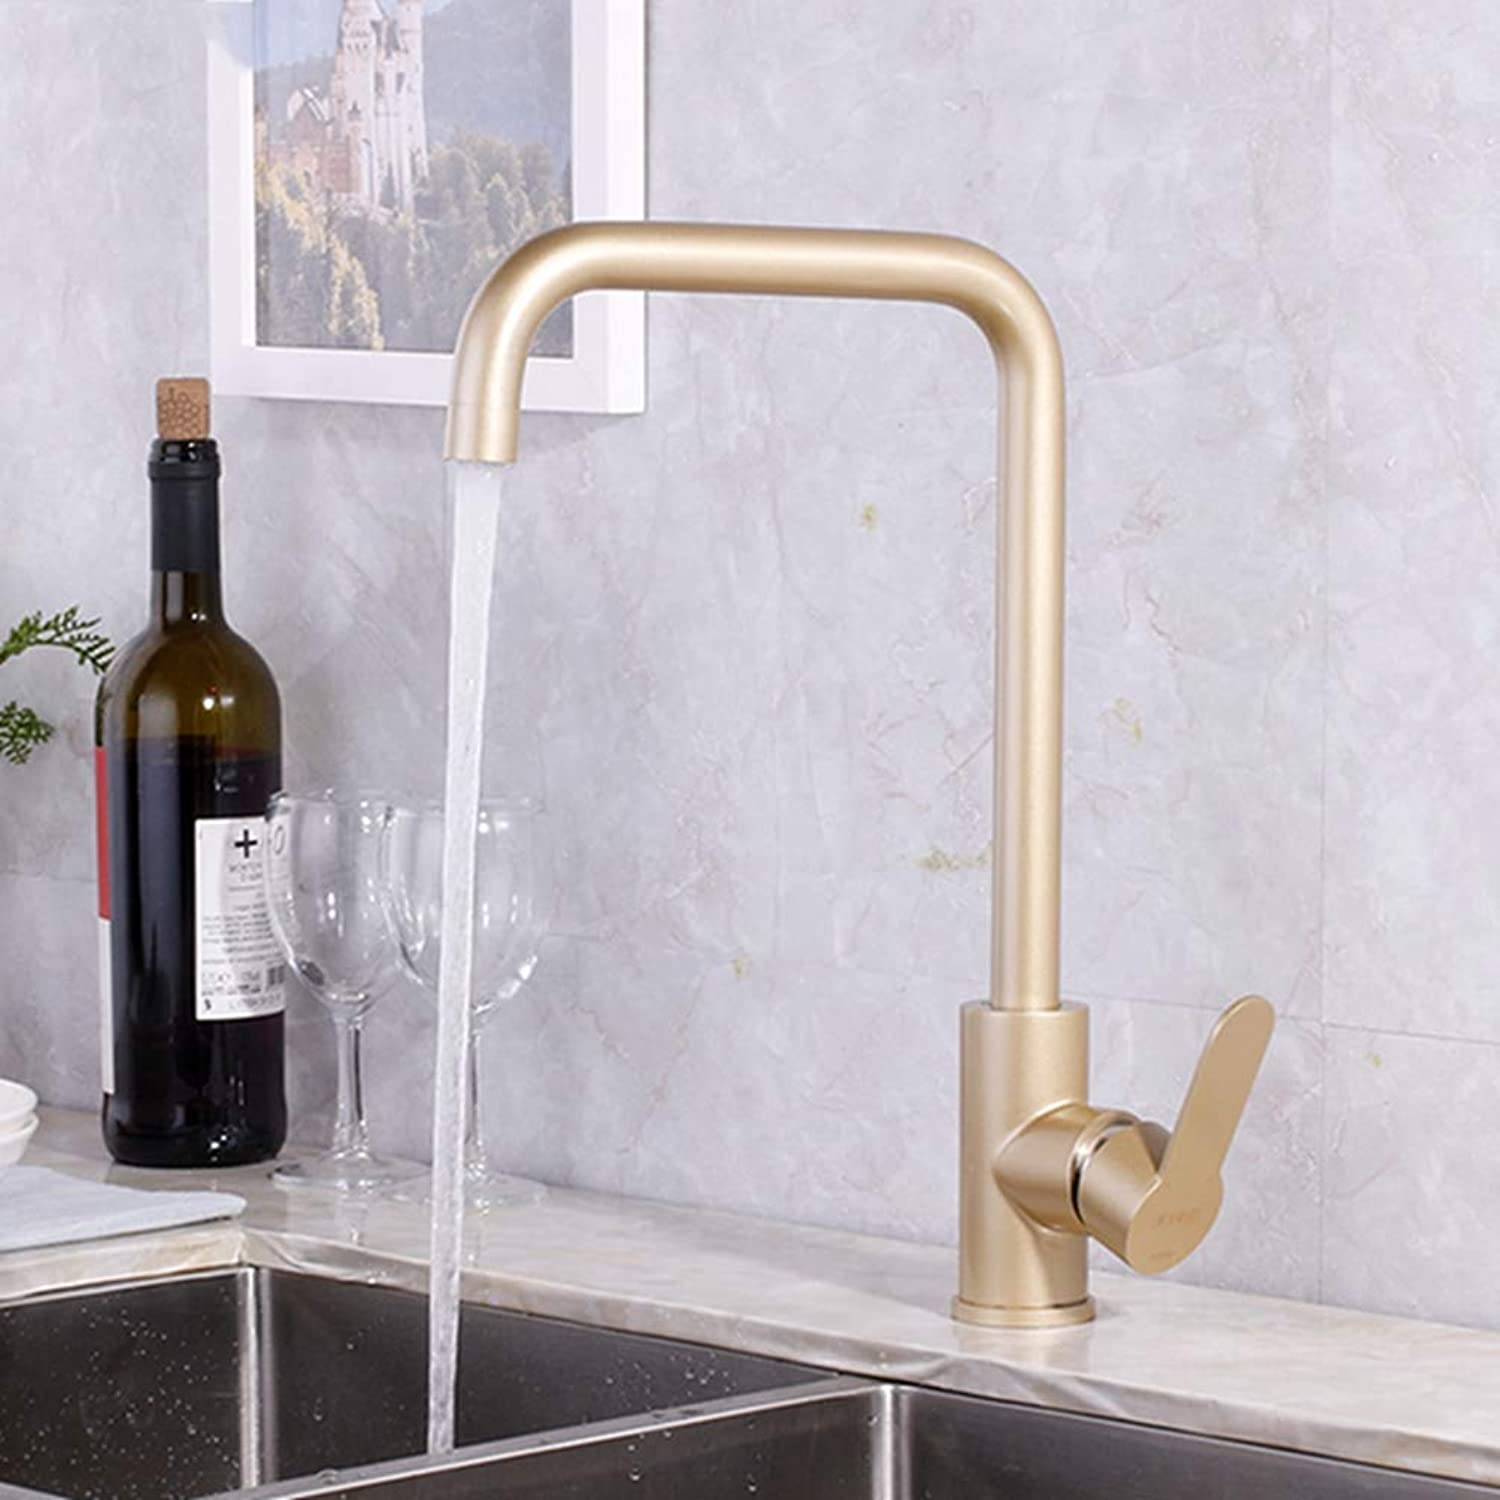 FZHLR Luxury Kitchen Faucet Brass for Cold and Hot Mixer Tap Sink Faucet Vegetable Washing Basin 360 Degree Swivel Basin Tap,Paint gold B